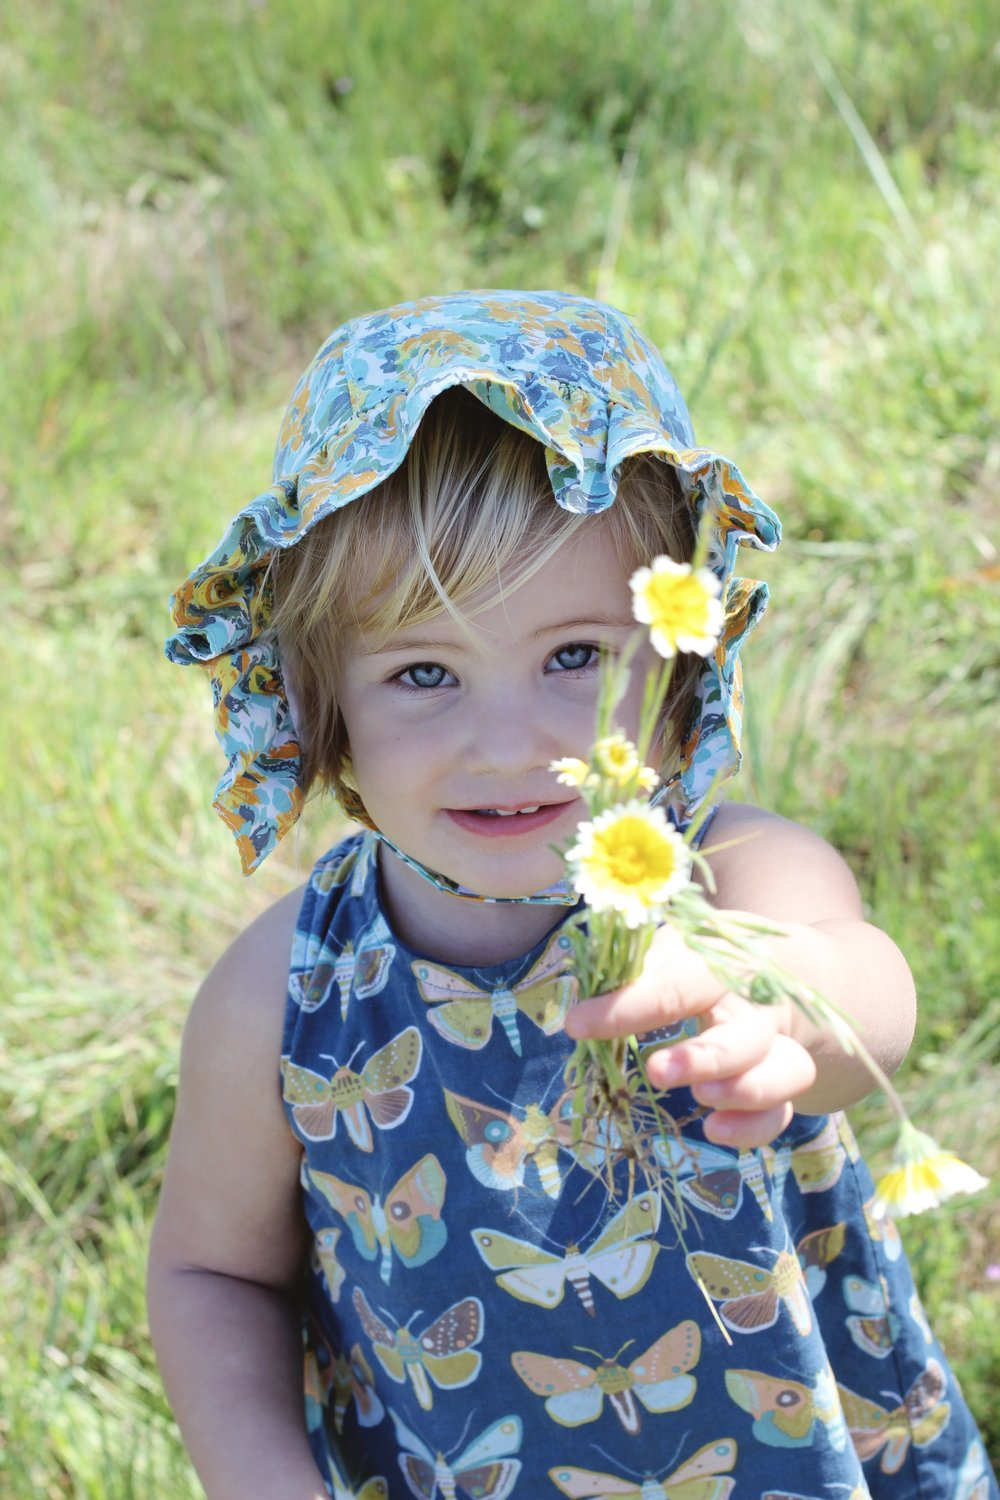 Ruffle sunbonnet by Blue Corduroy here.  photo by Native Fern.